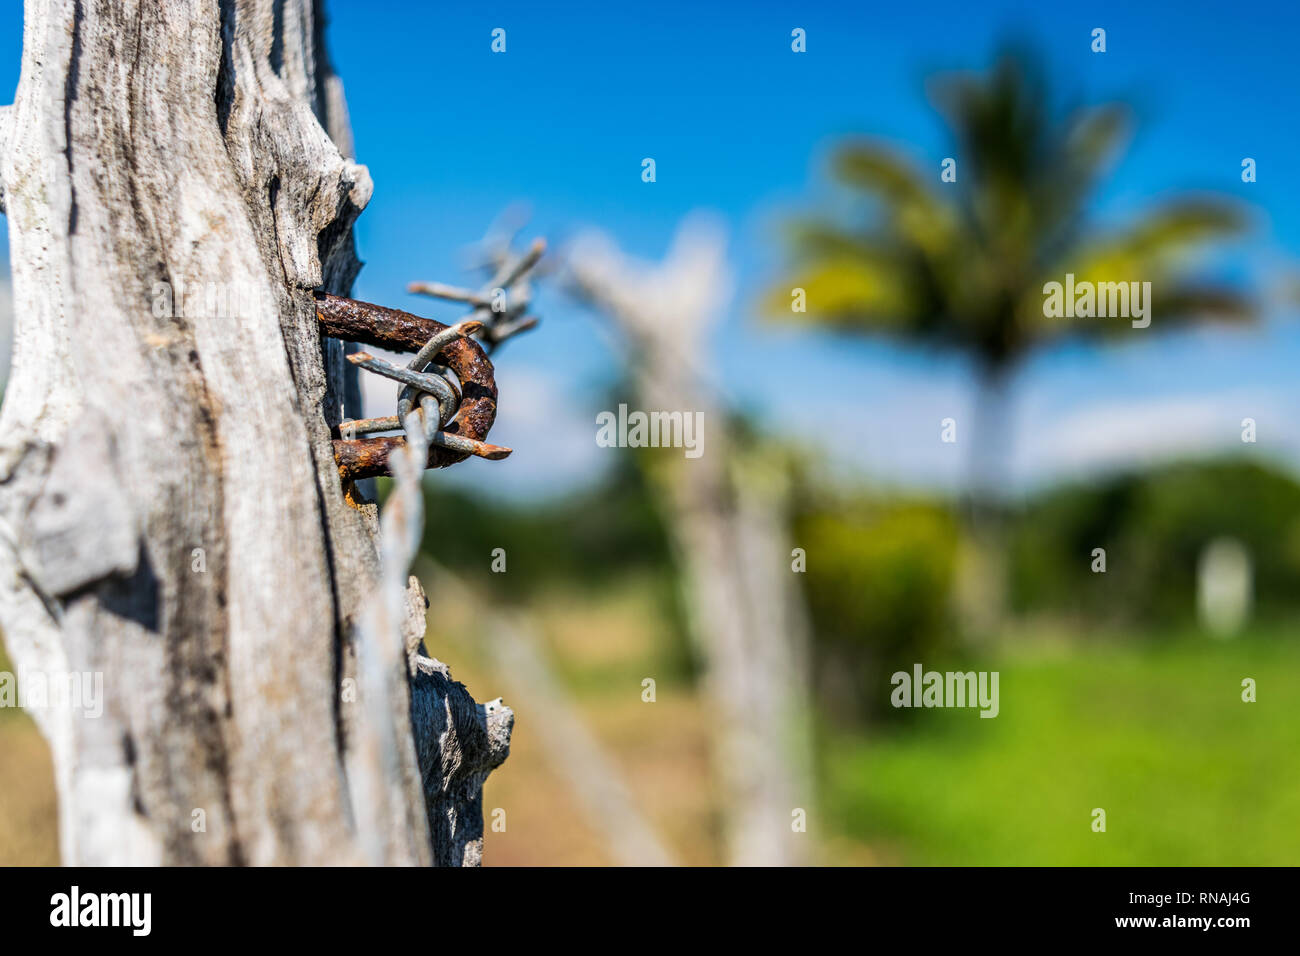 Textured wooden post up close, part of a barbed wire fence boundary on farm land in the countryside. Coconut Palm tree in background. - Stock Image